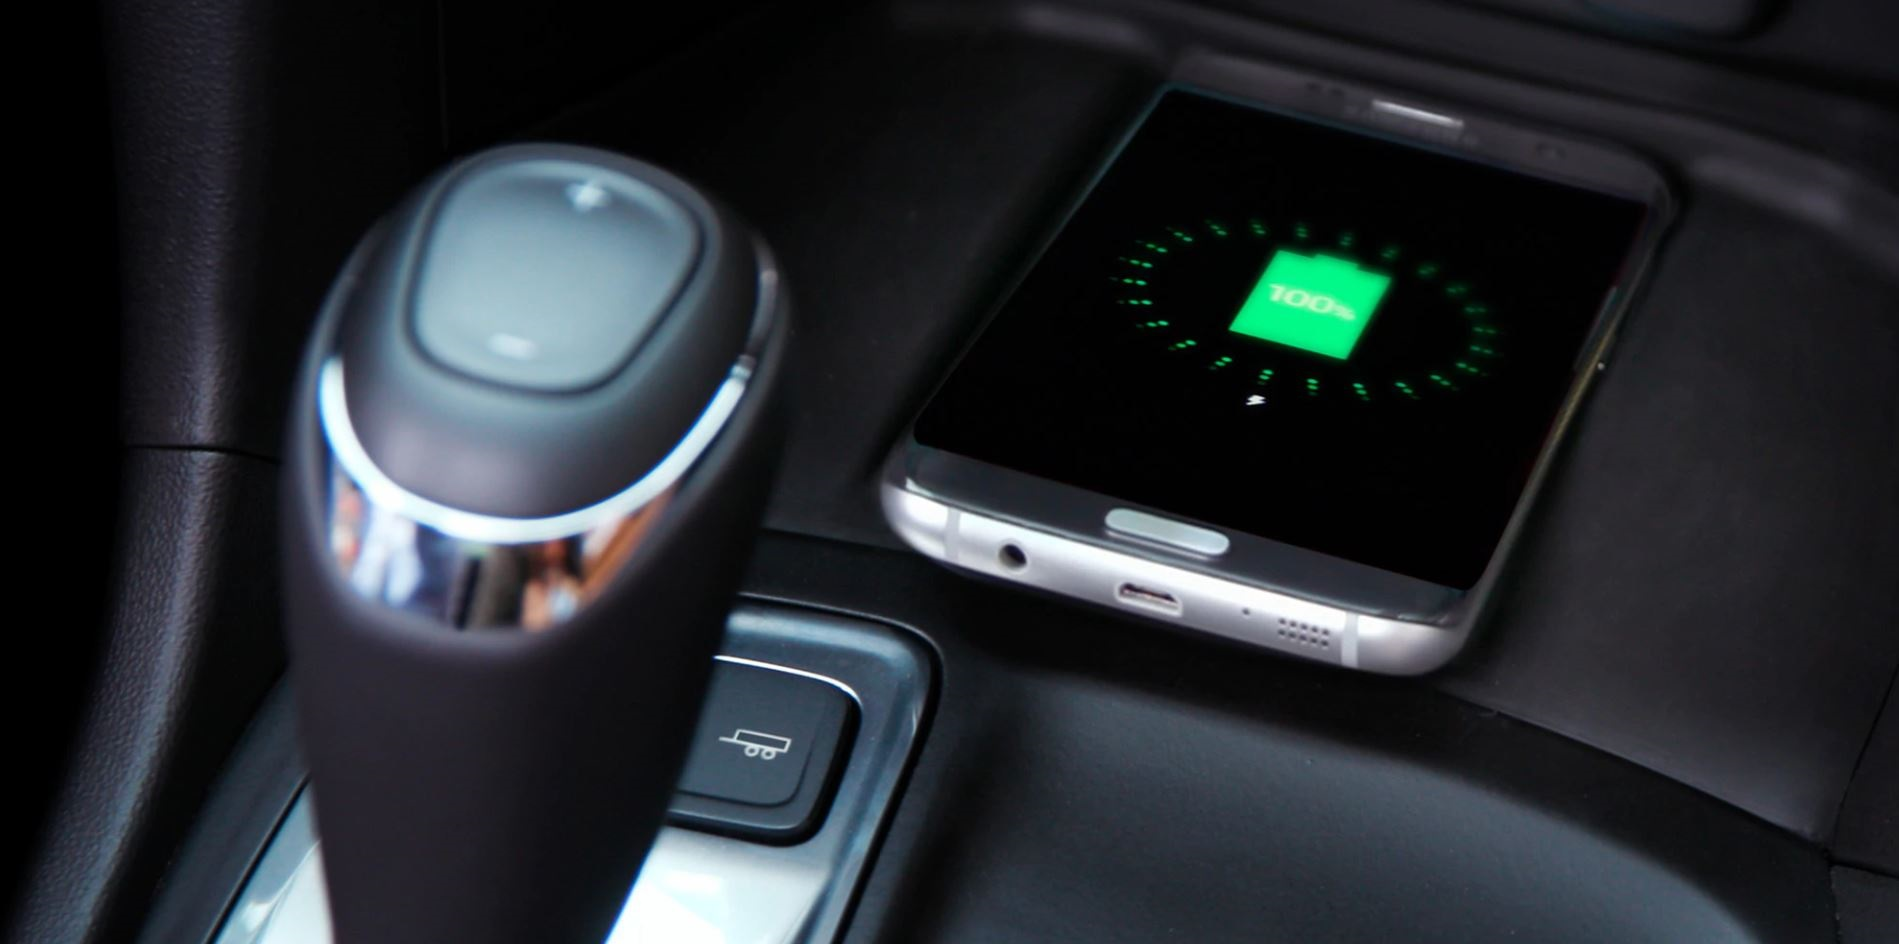 2020 Chevrolet Equinox Charging Dock